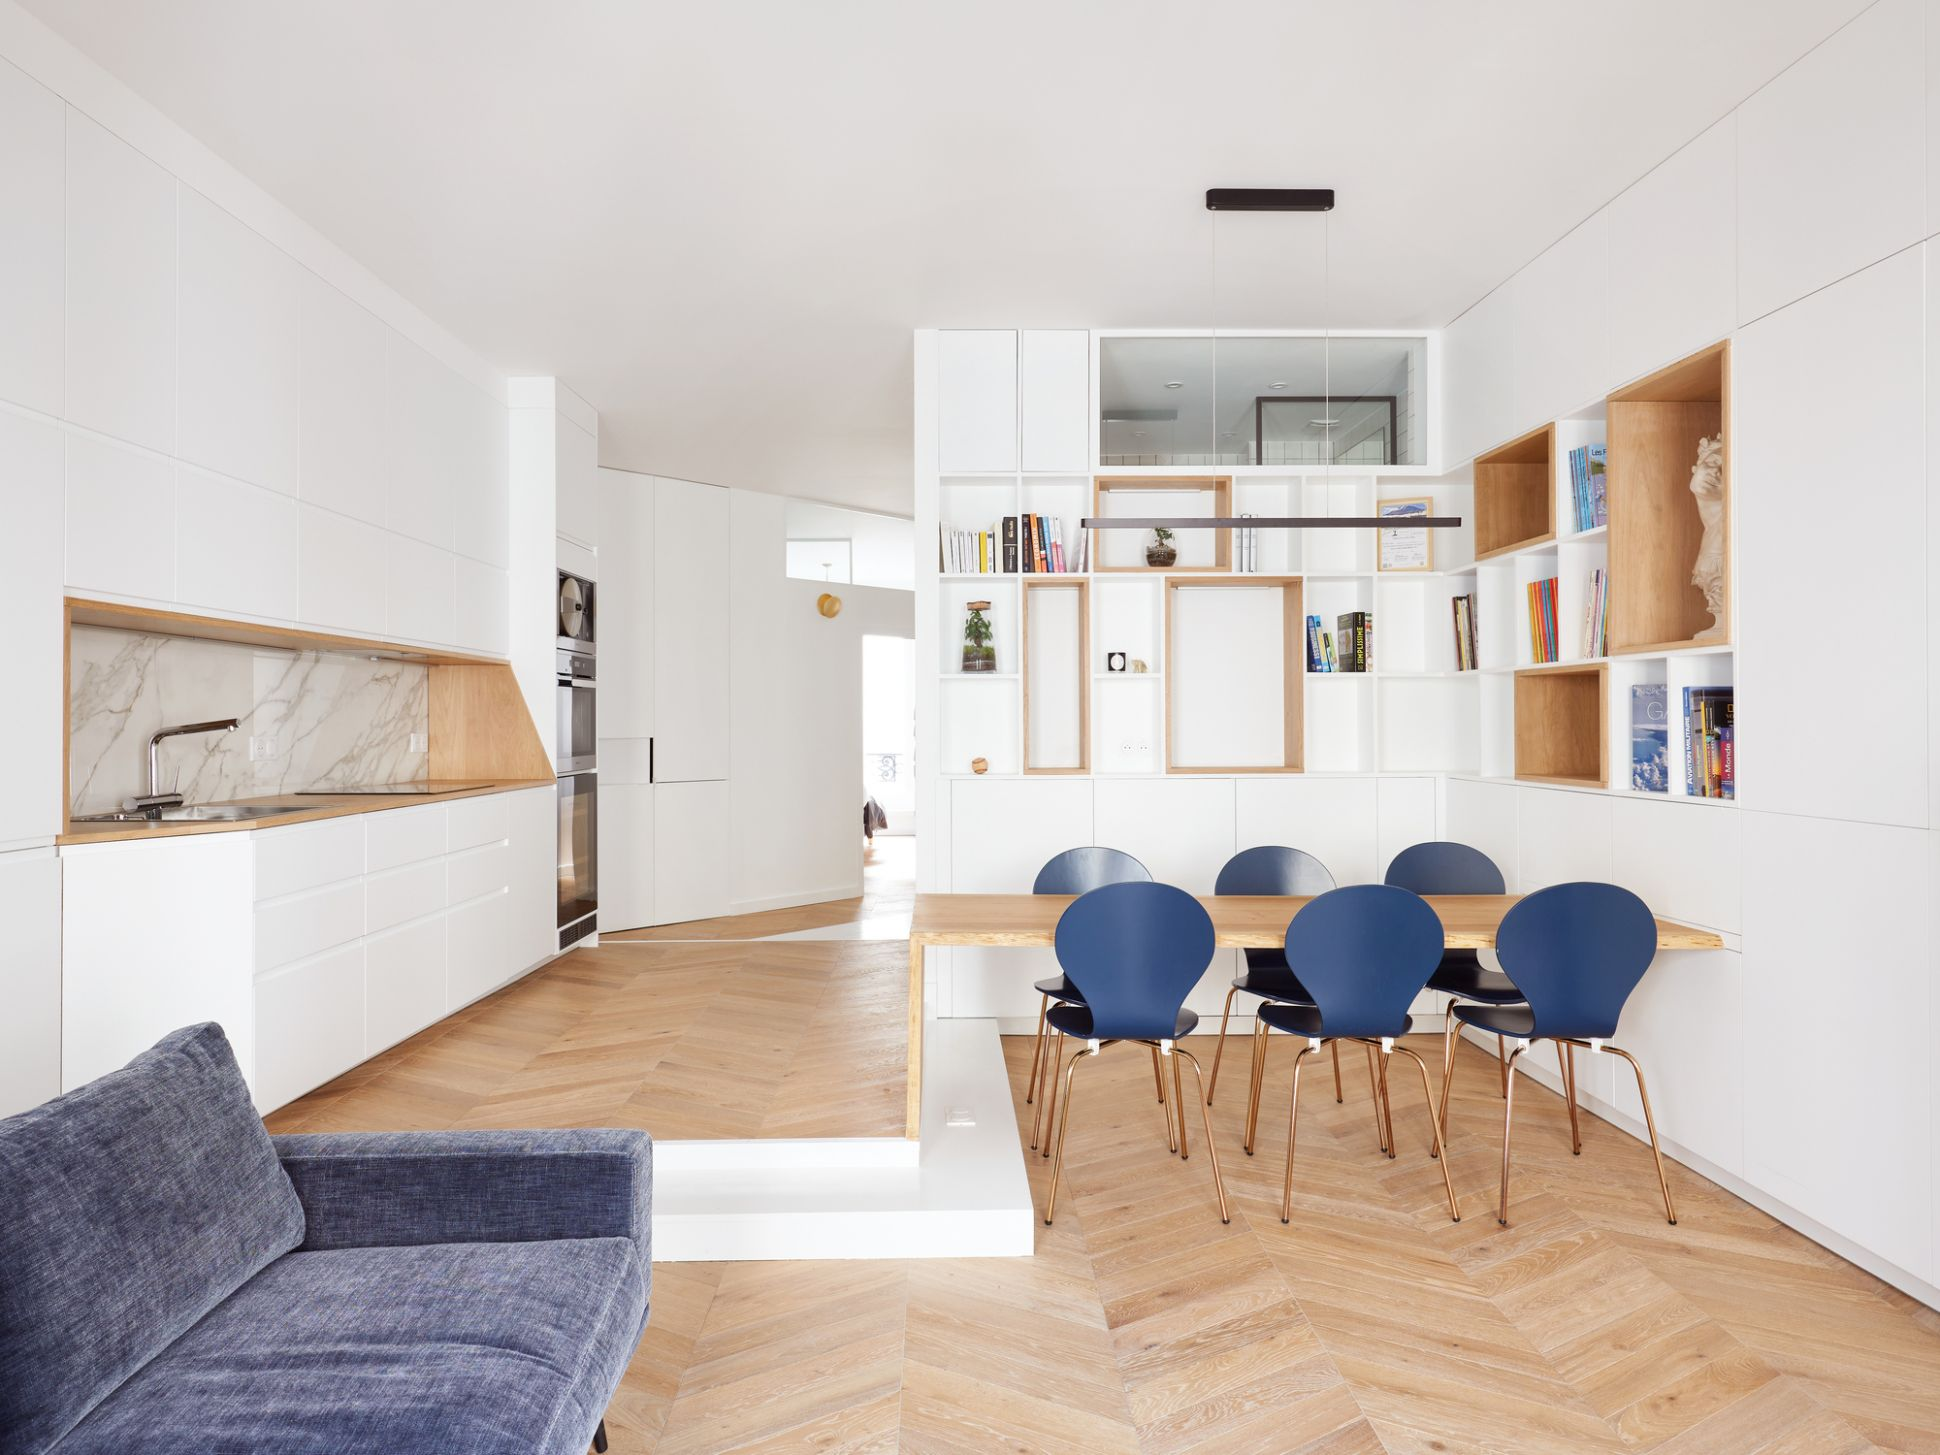 Apartment interiors architecture and design in France | ArchDaily